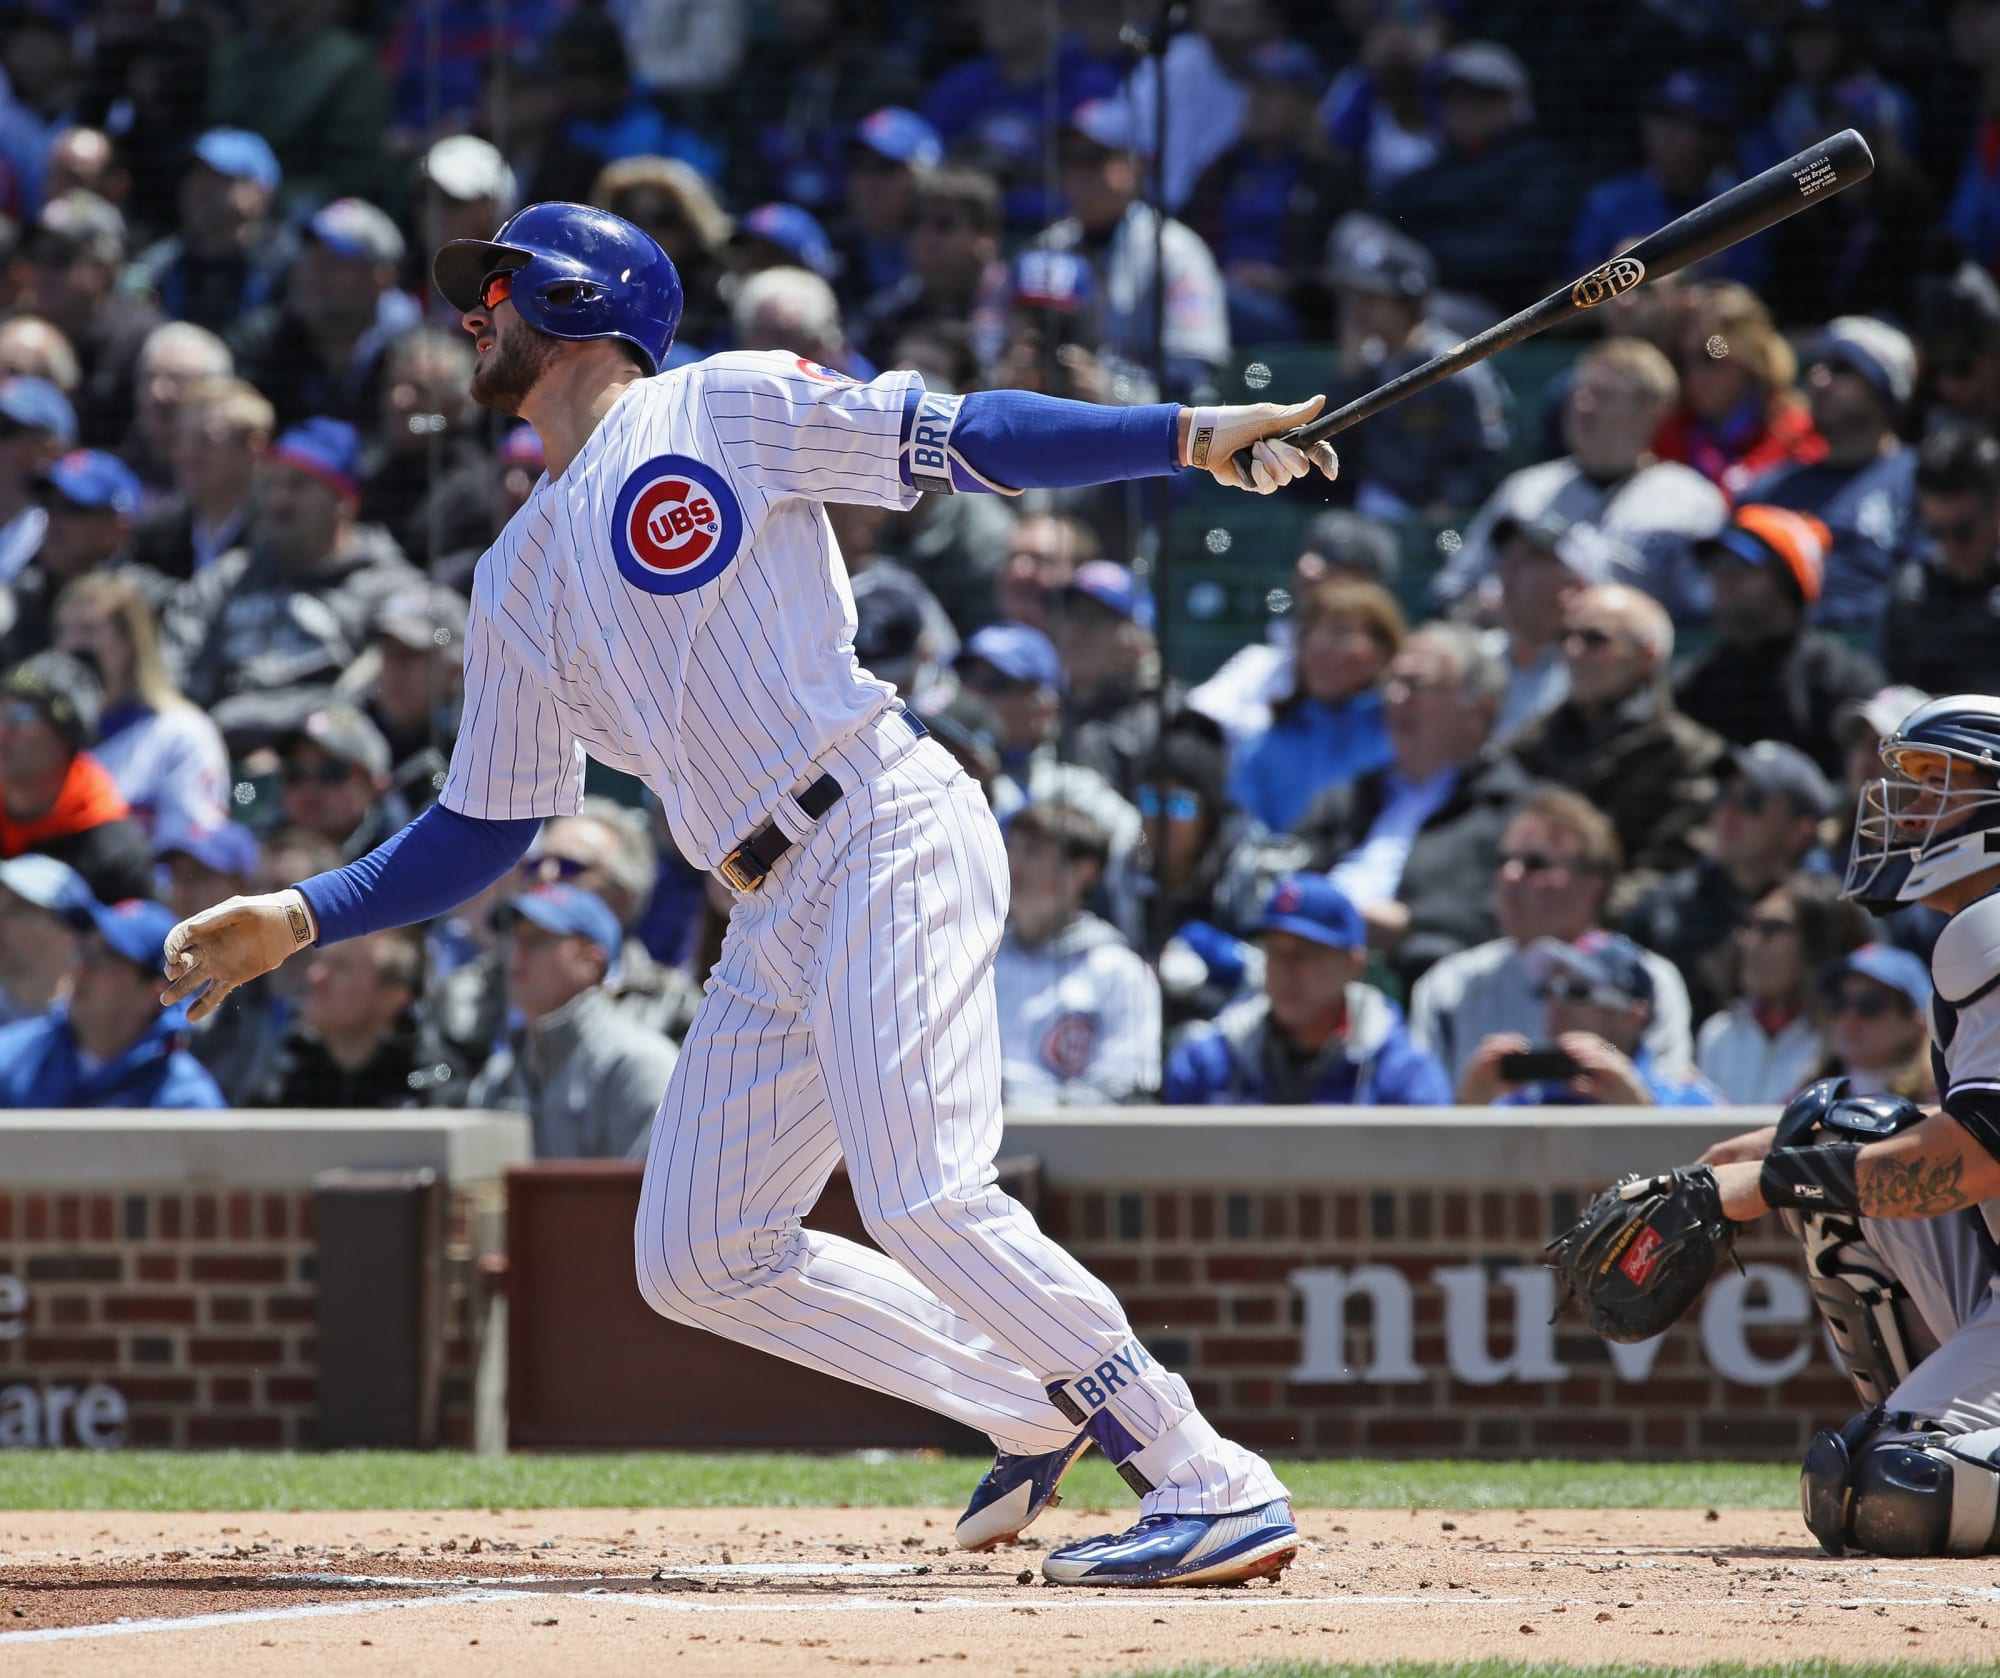 Yankees-Cubs Kris Bryant trade rumors would be far too costly